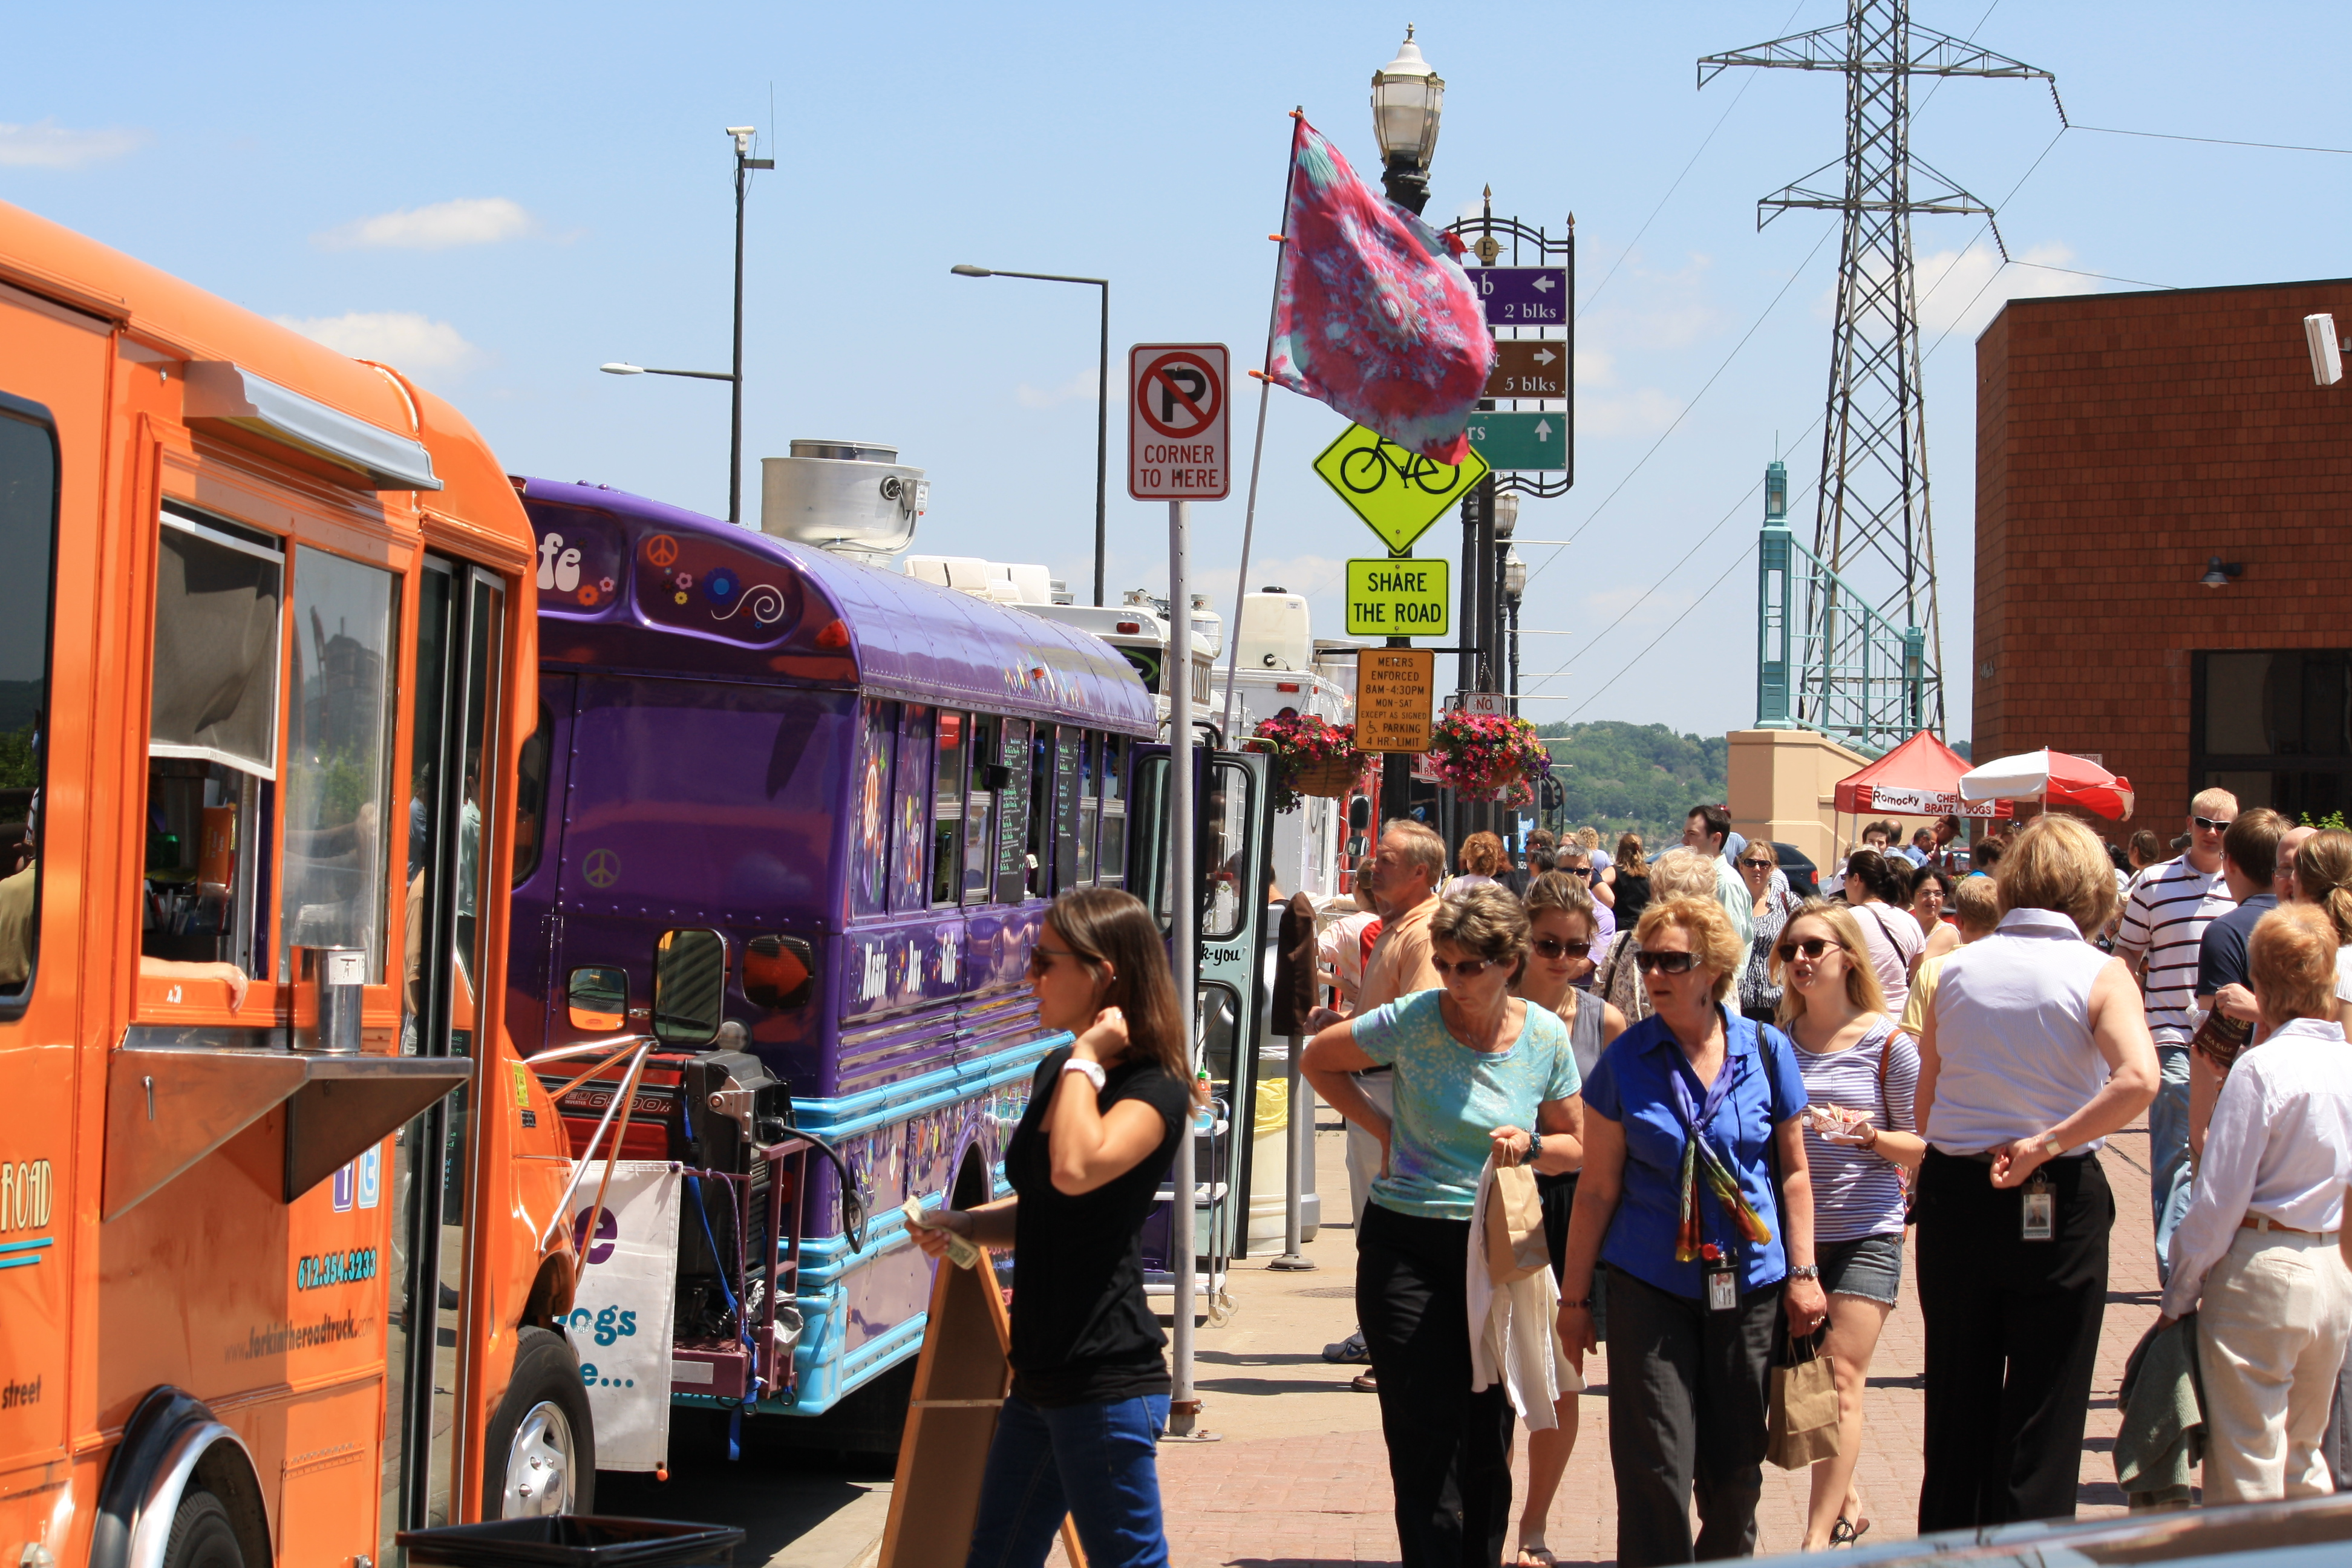 Brainerd Country, MN: Brainerd City Council – City Will Seek to Work with Baxter on Food Trucks